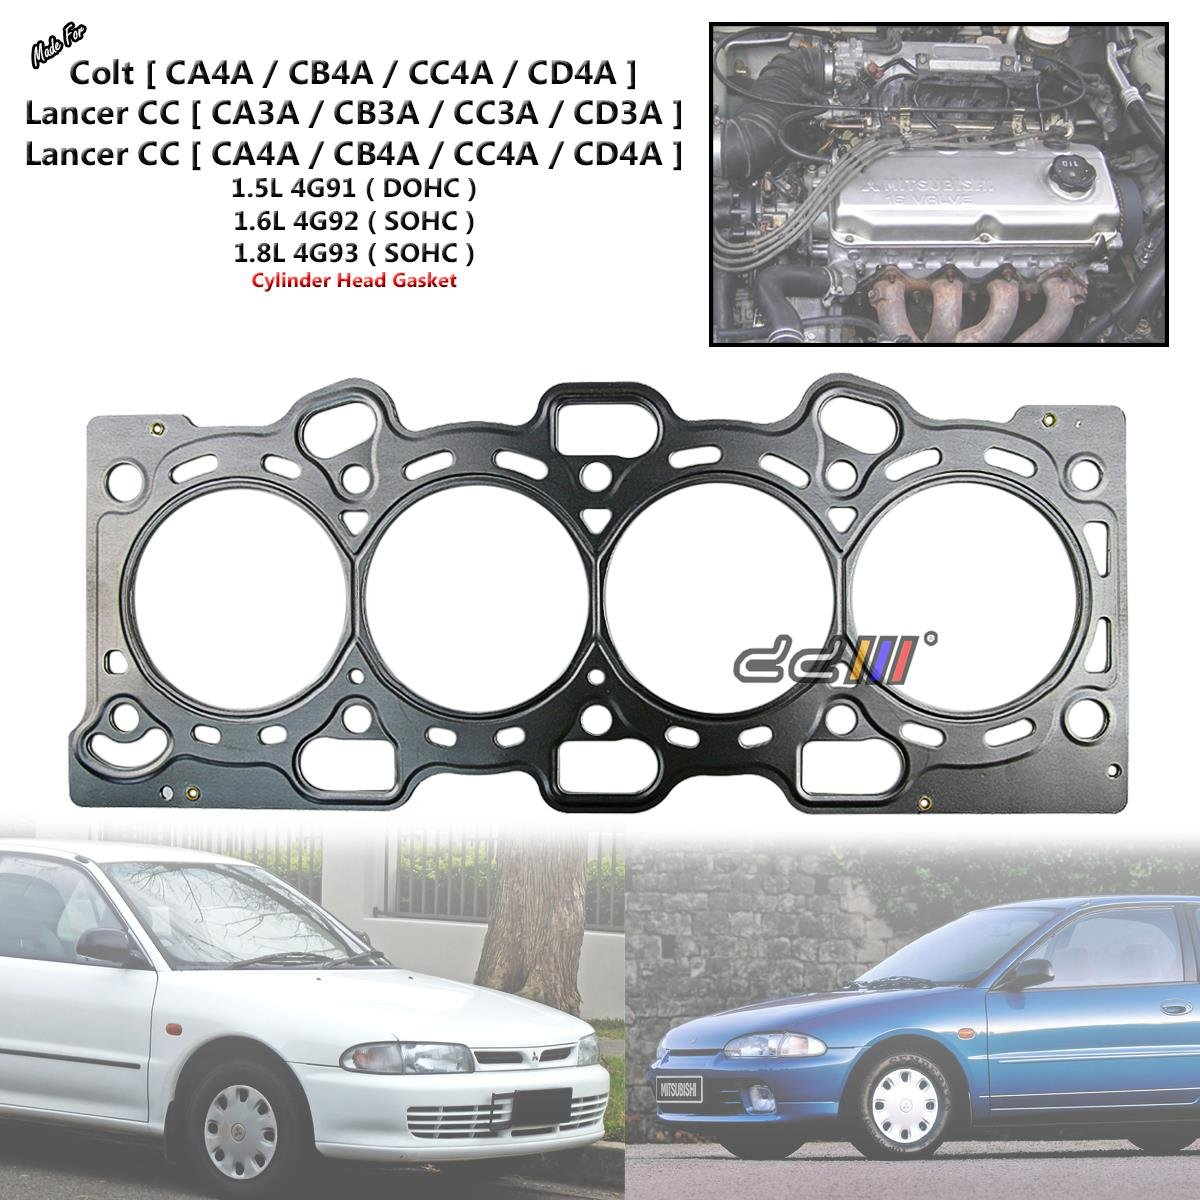 lancer cb3a service manual browse manual guides u2022 rh npiplus co Service Station Parts Manual